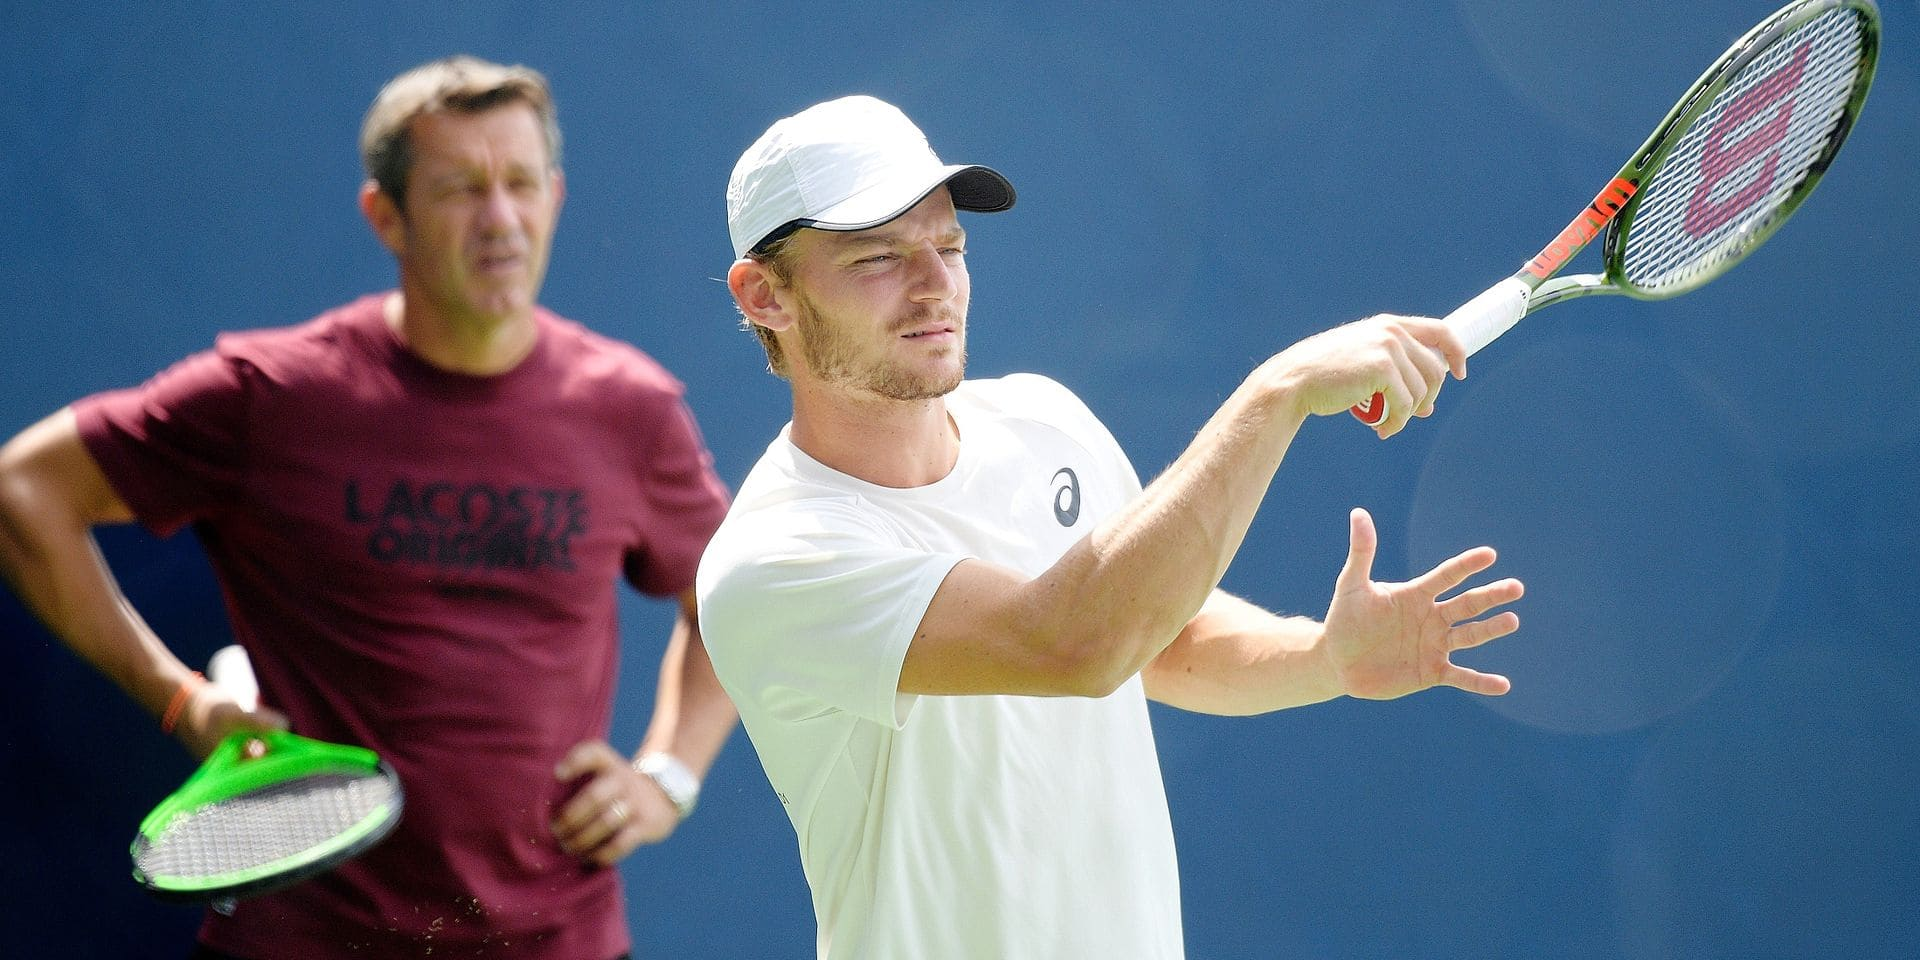 Goffin's coach Thierry Van Cleemput and Belgian David Goffin pictured during a training session ahead of the 118th US Open Grand Slam tennis tournament, at Flushing Meadow, in New York City, USA, Friday 24 August 2018. BELGA PHOTO YORICK JANSENS